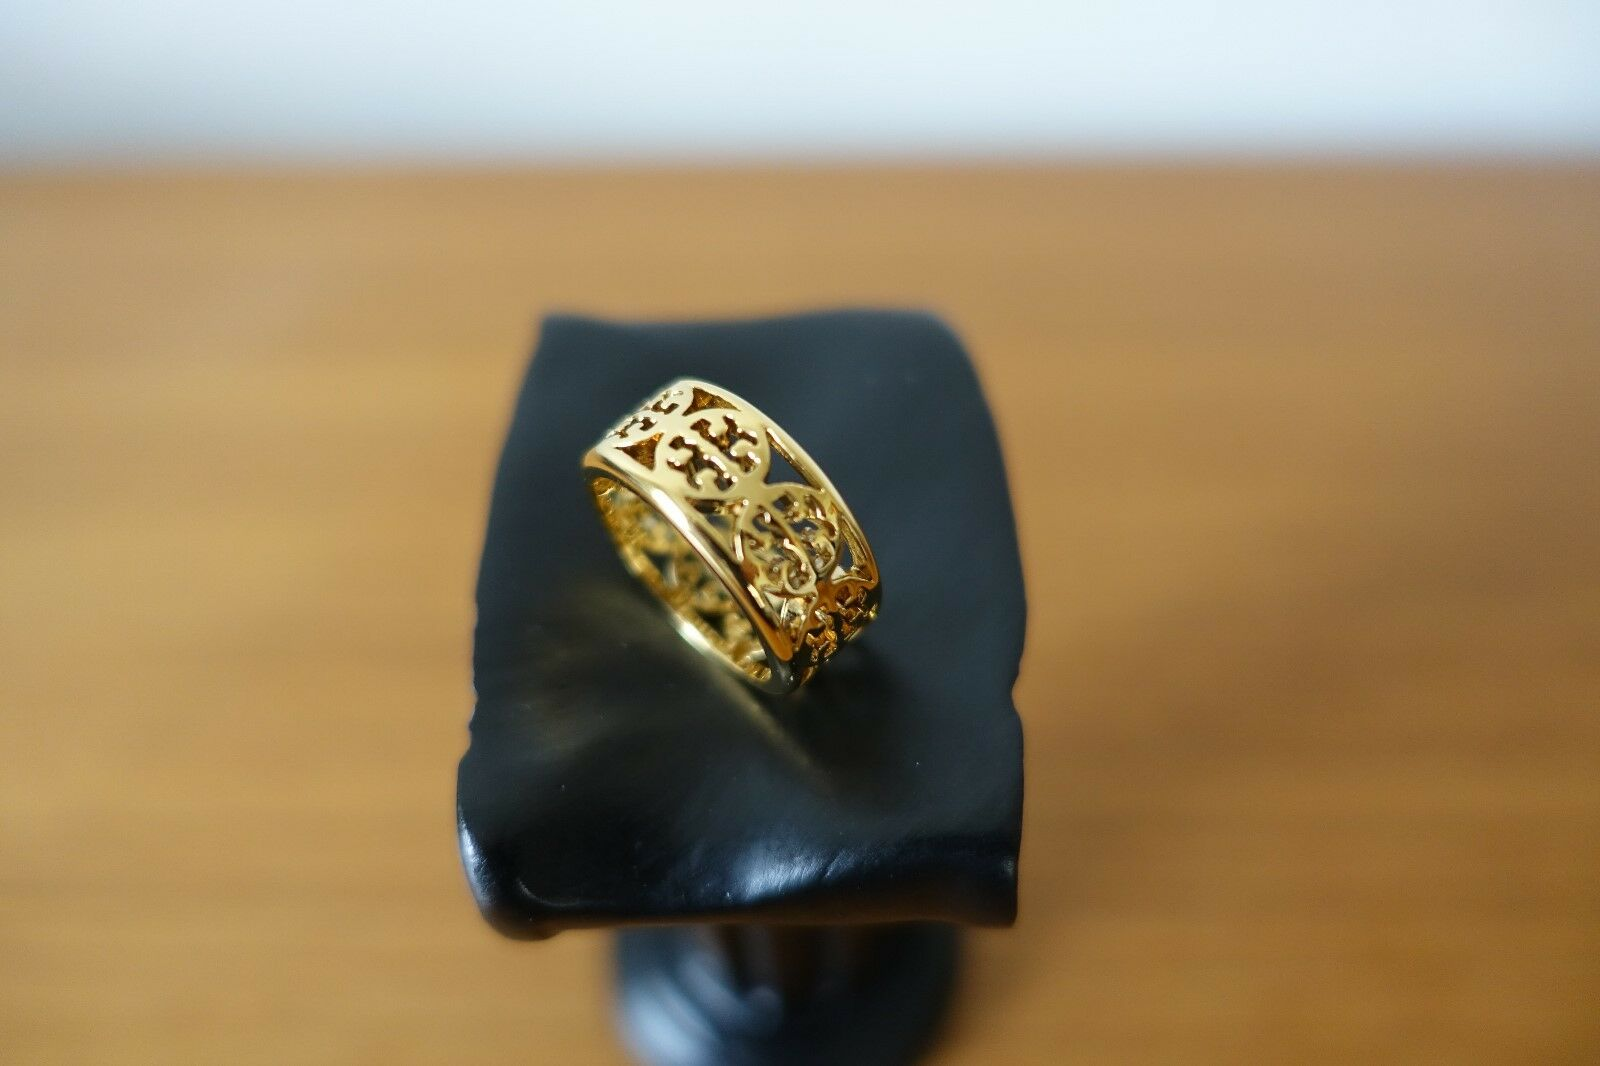 TORY BURCH RING IN gold COLOR. KINSLEY RING. SIZE 6 NEW